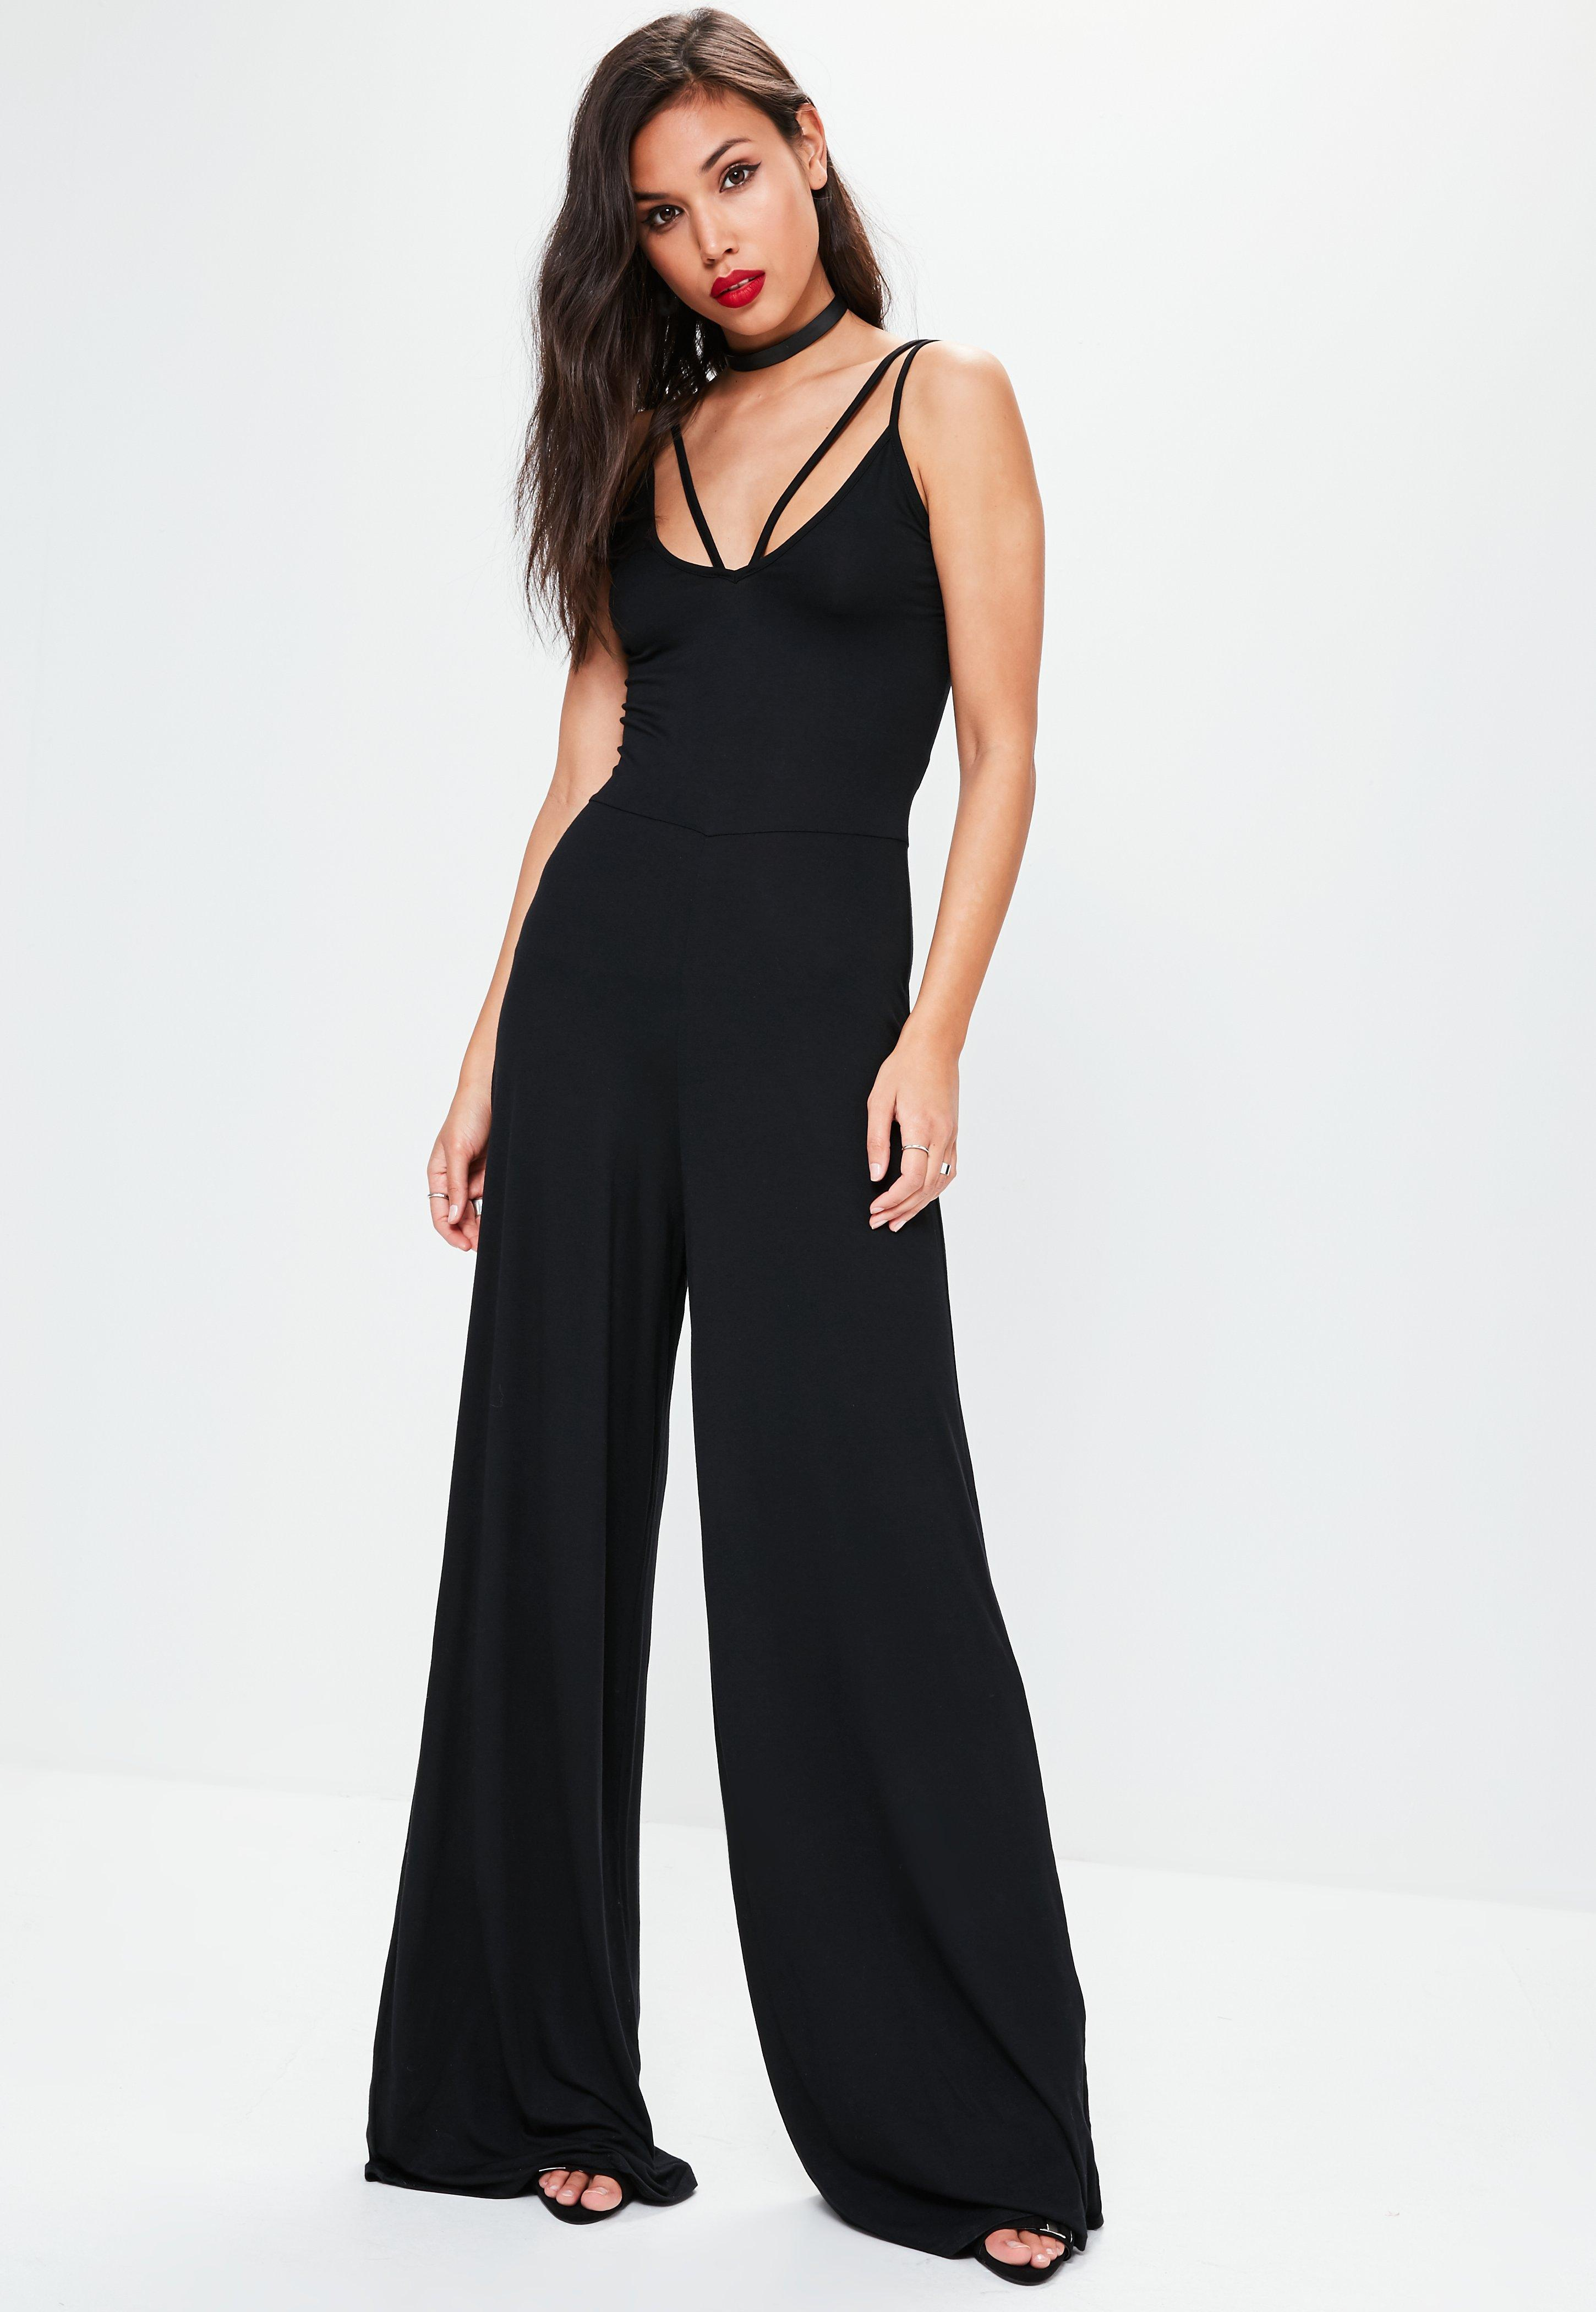 30d1d409d9a Lyst - Missguided Tall Exclusive Black Harness Wide Leg Jumpsuit in ...